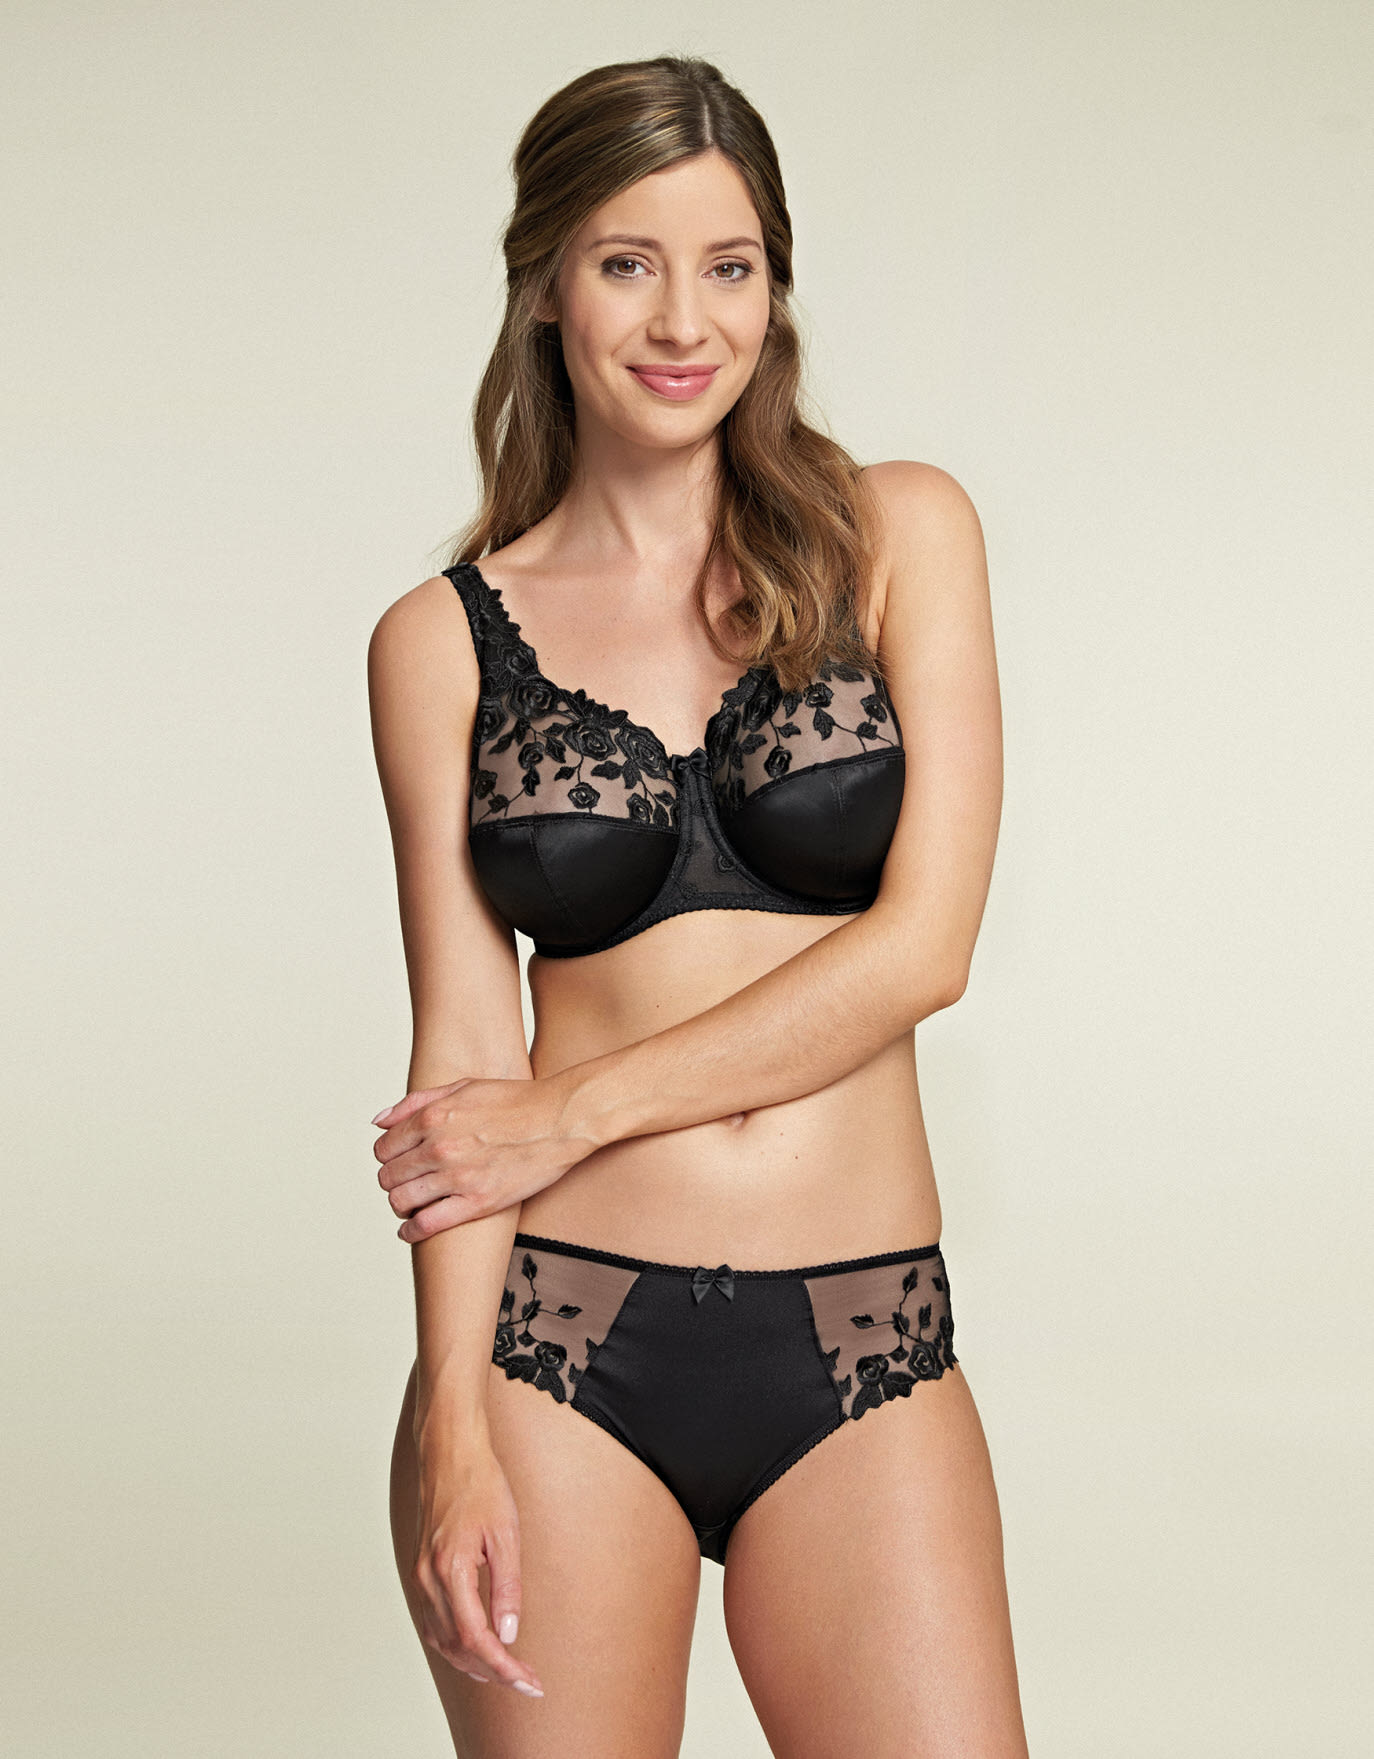 d9069d5b6 Belle Full Cup Bra in Black by Fantasie